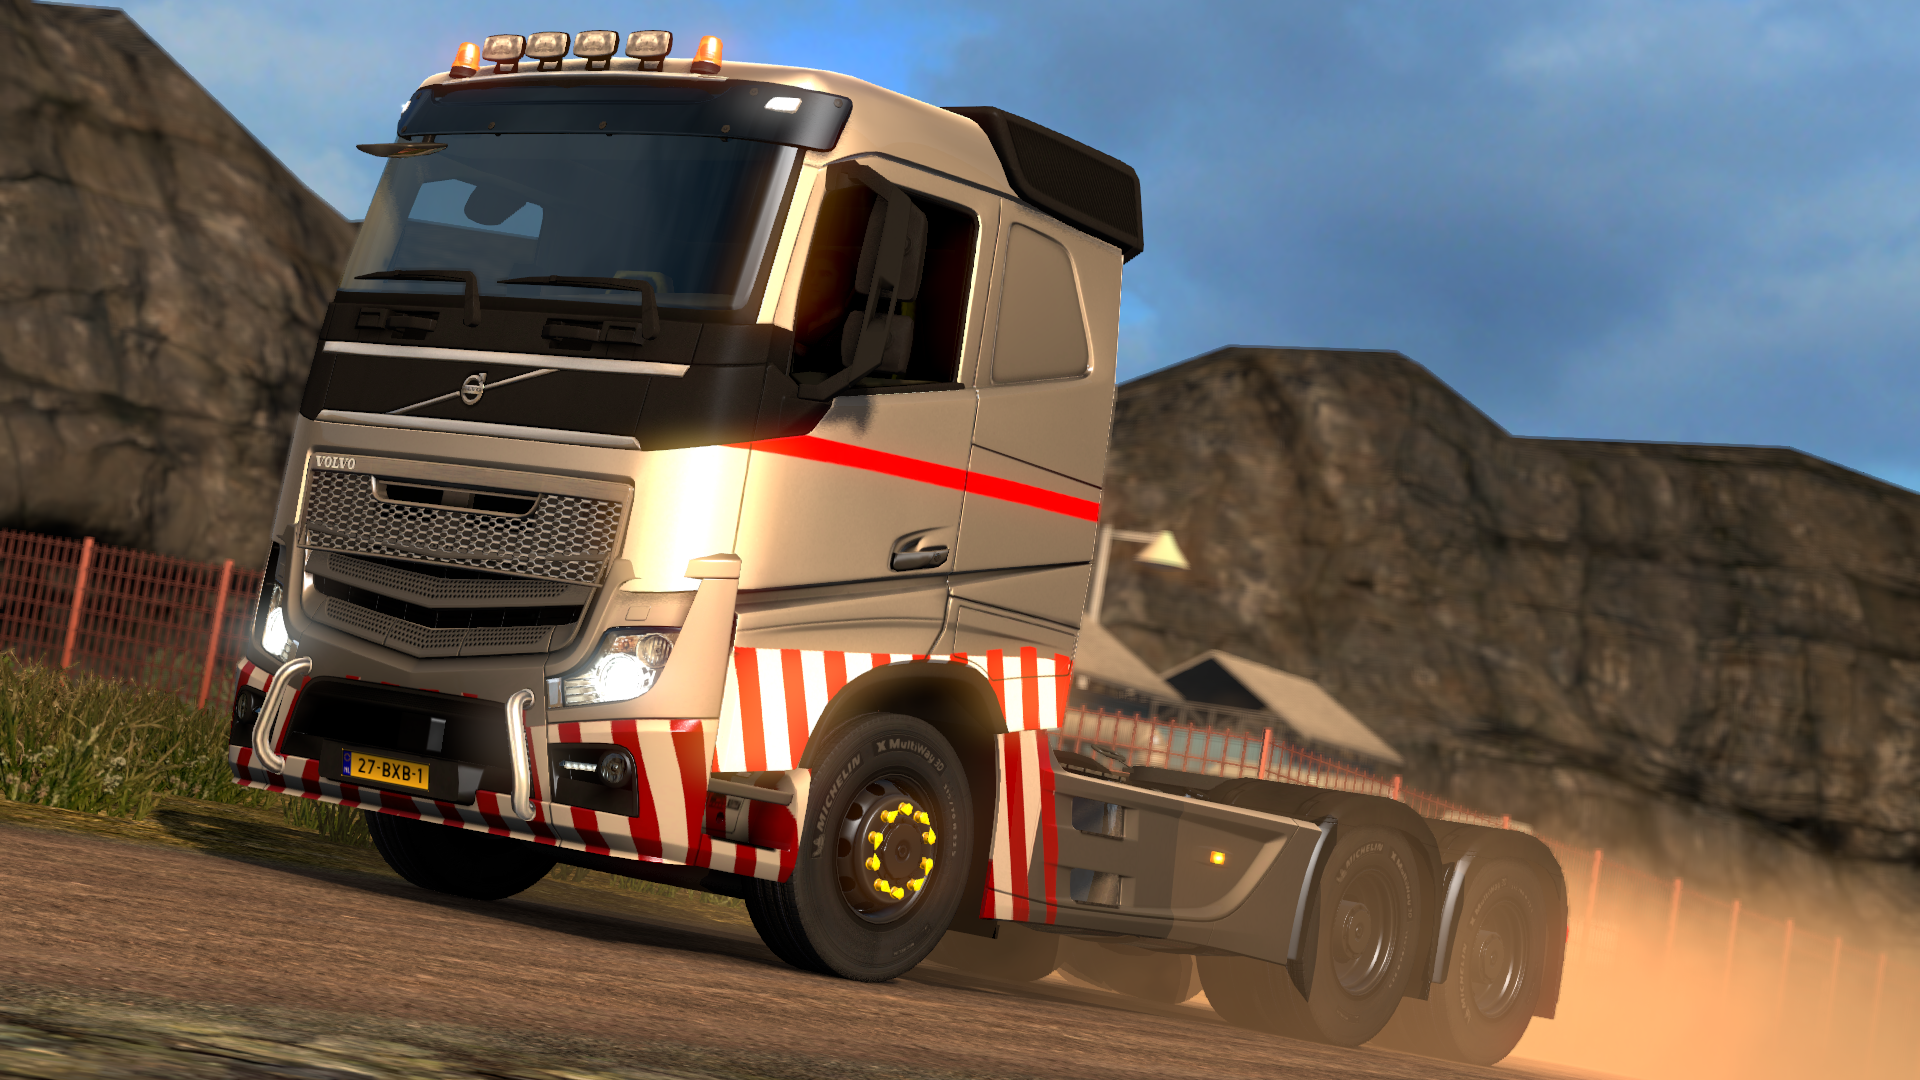 W9ryD2P.png - Old Truck PNG HD